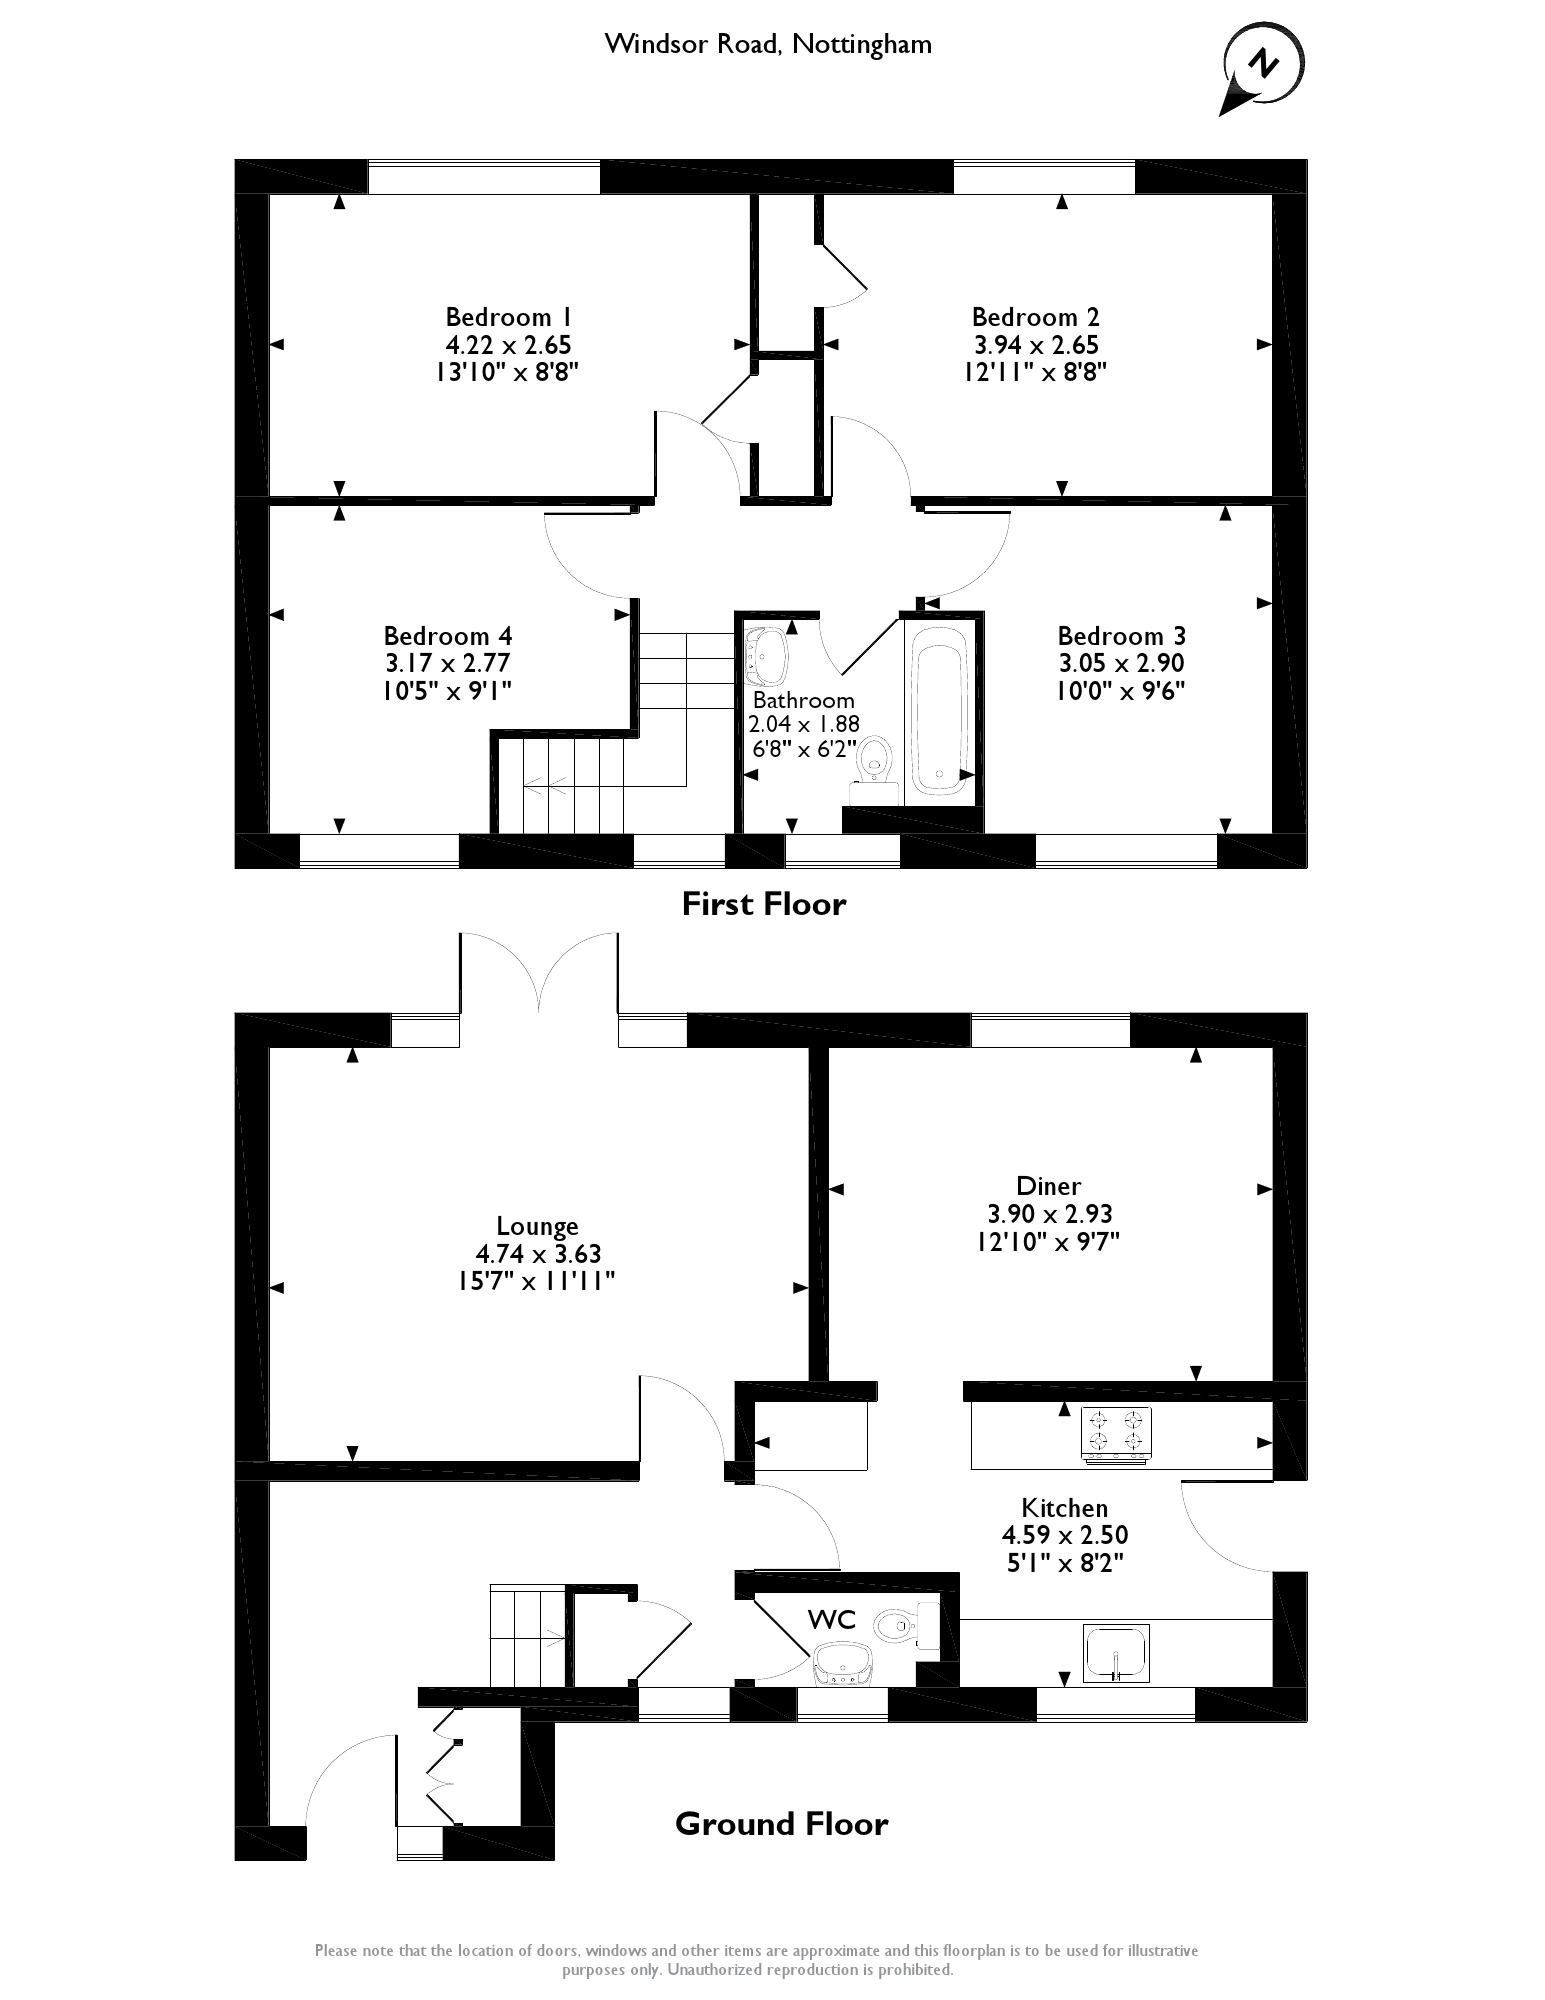 Windsor Road, Nottingham, NG16 floor plan